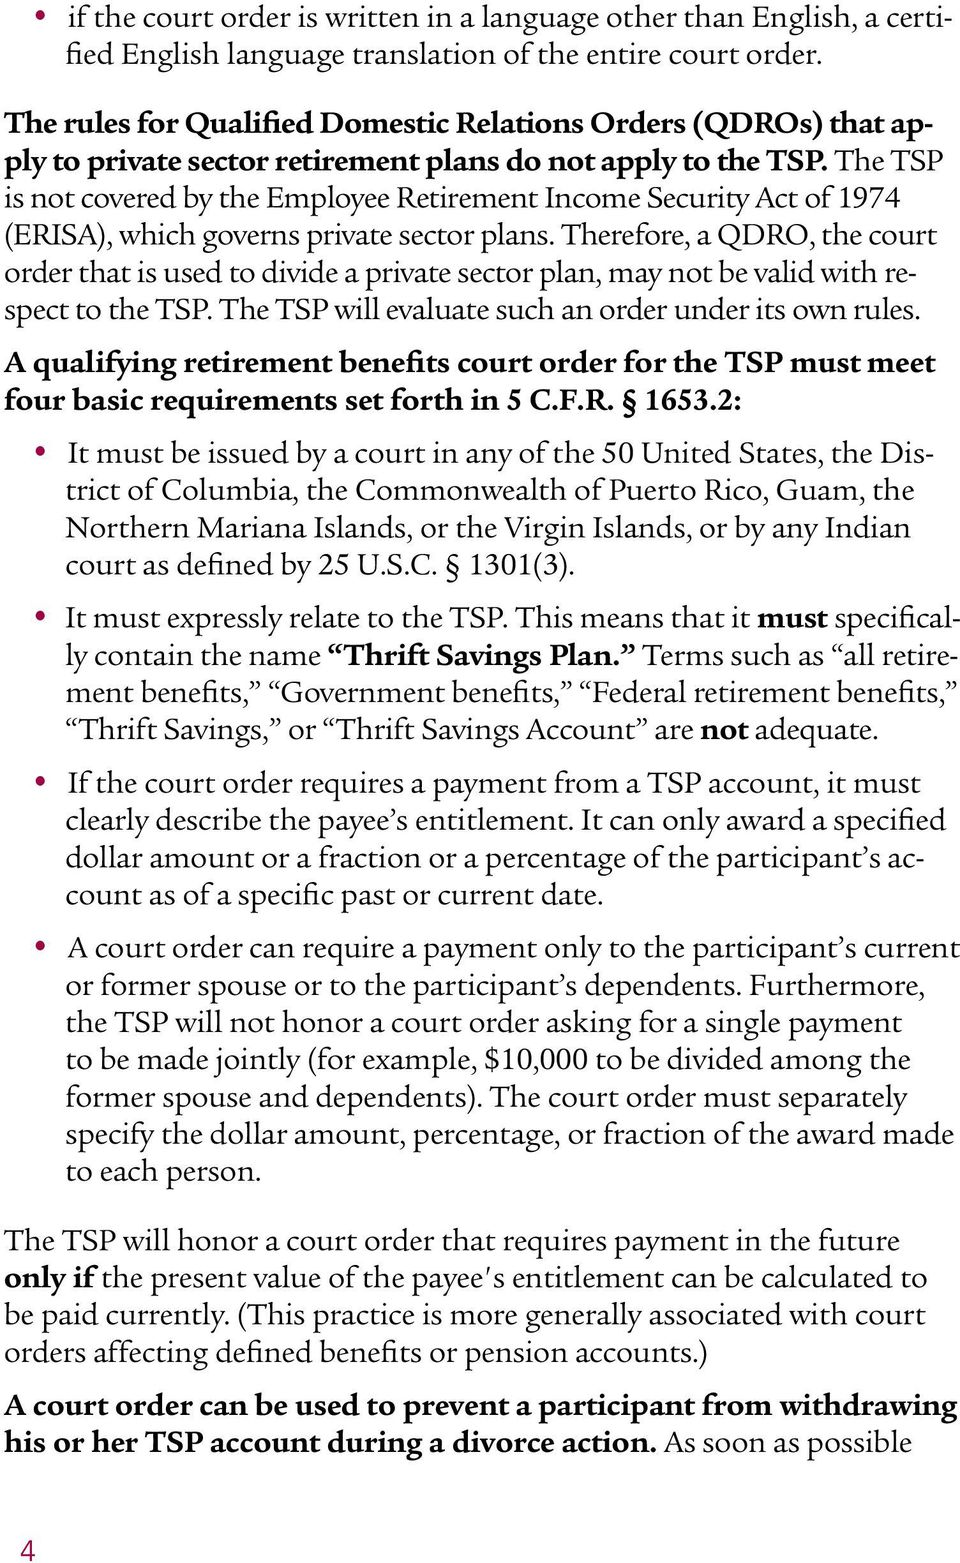 The TSP is not covered by the Employee Retirement Income Security Act of 1974 (ERISA), which governs private sector plans.